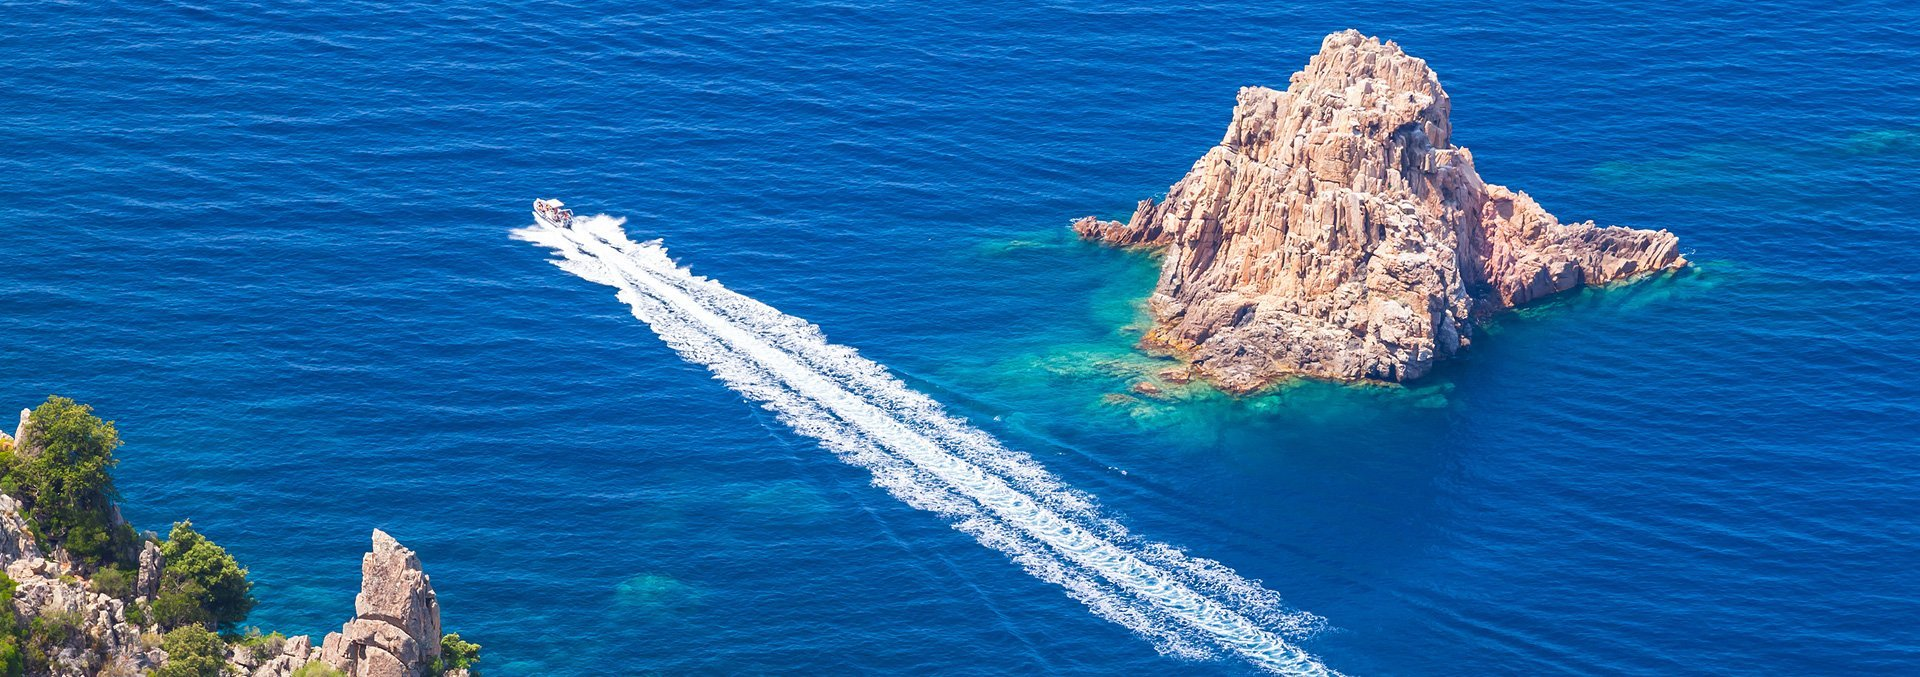 Aerial view of individual using a boat in ocean water